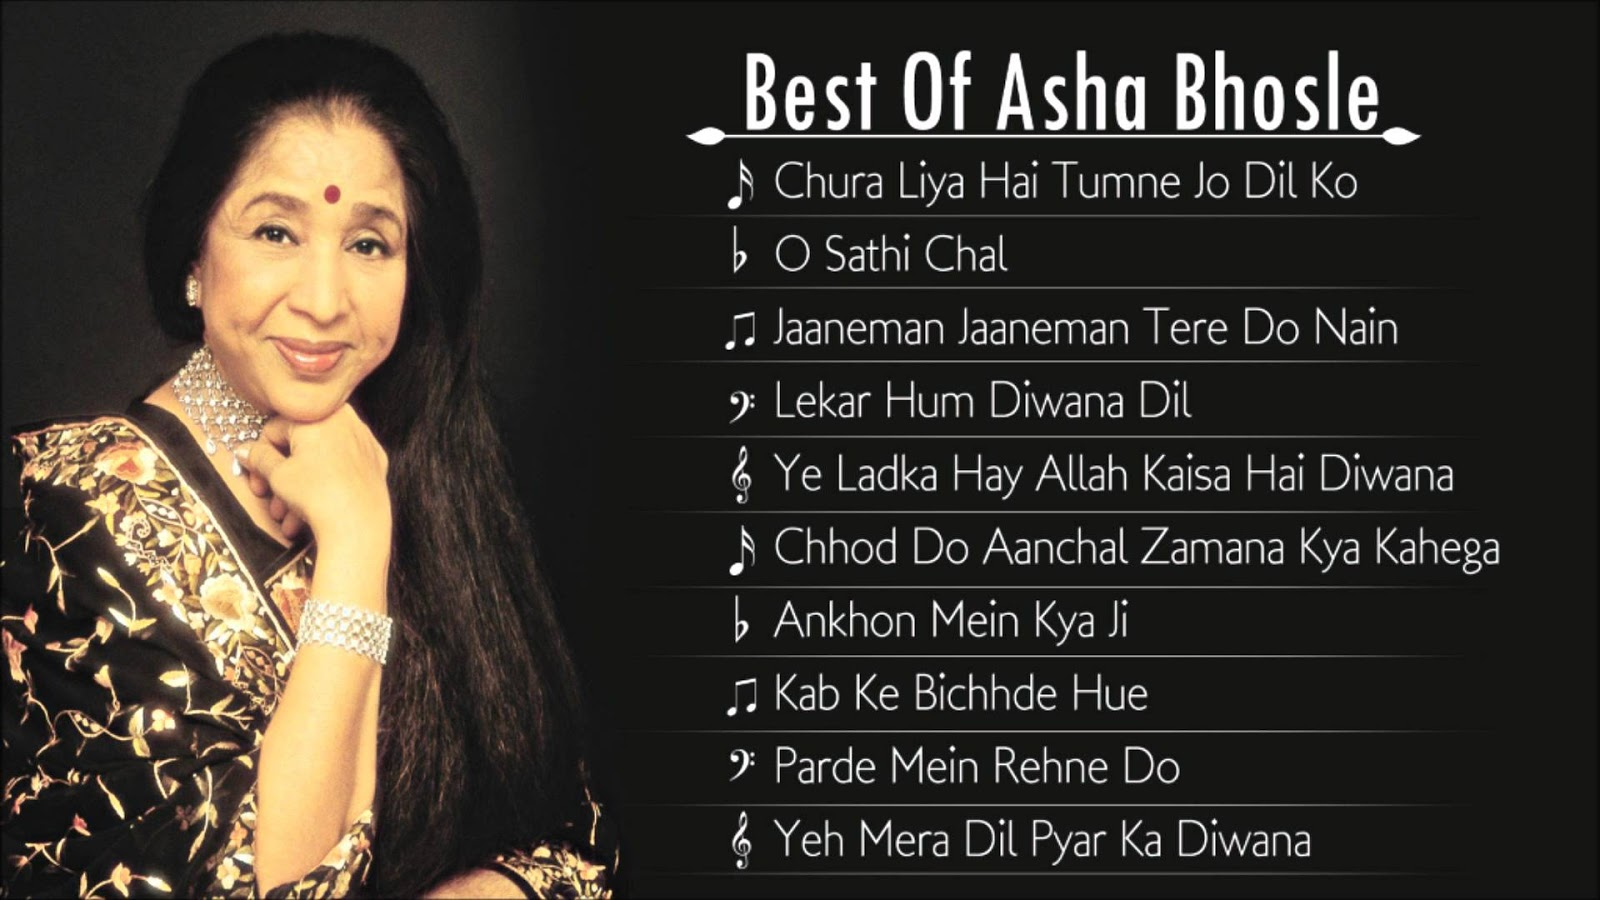 Mp3 Music Download: The Best Of Asha Bhosle Bangla Mp3 Song